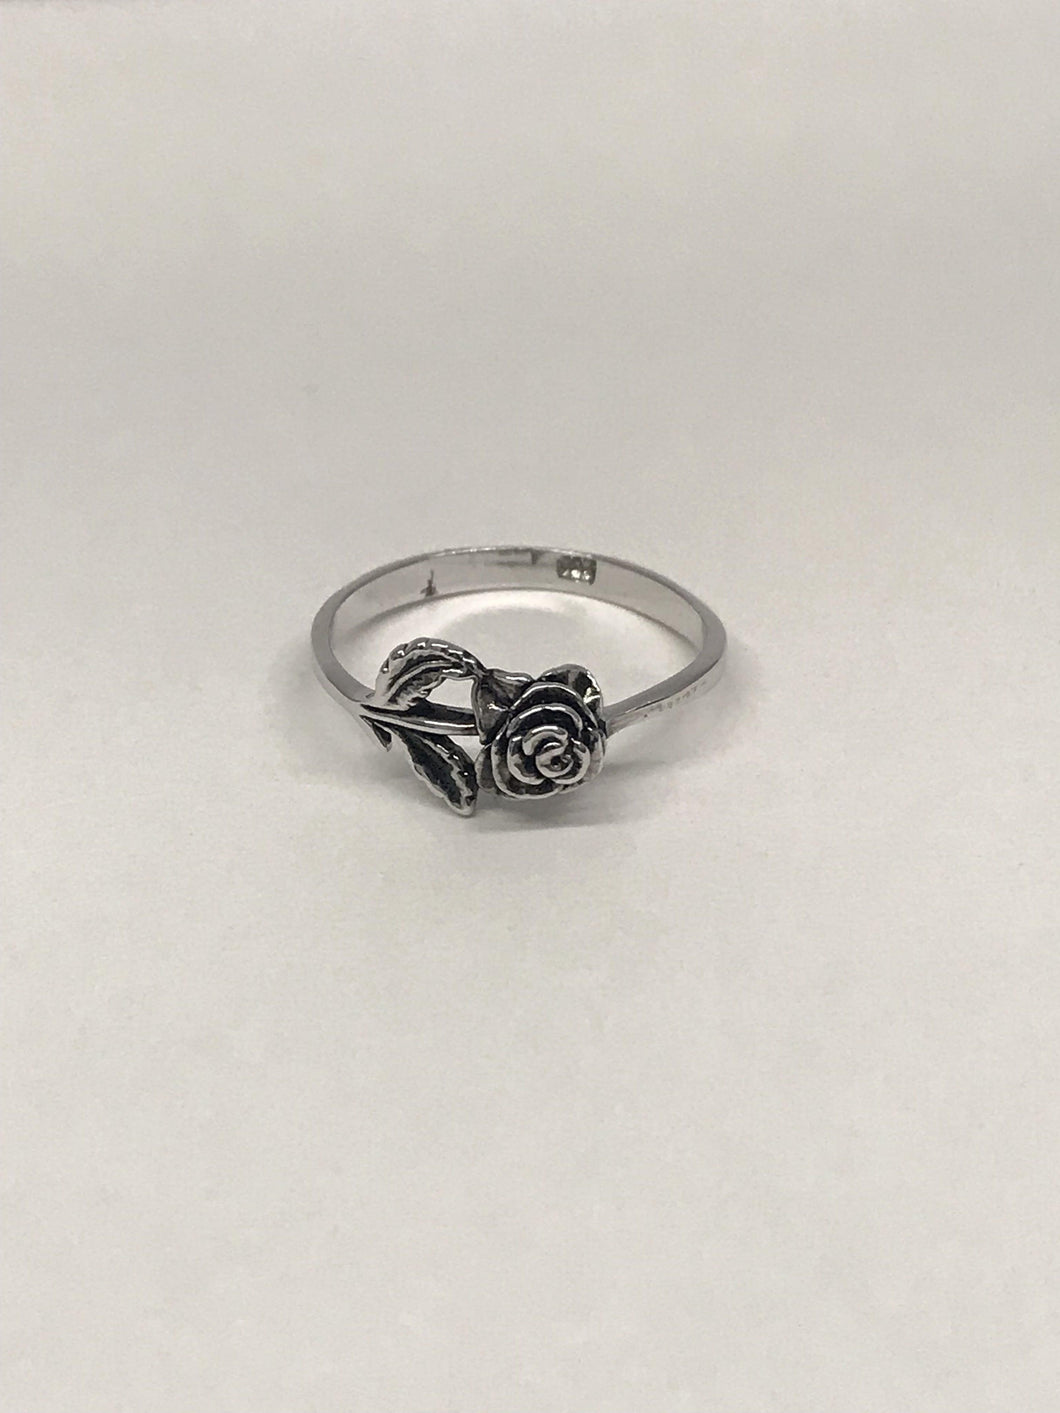 www.hersandhistreasures.com/products/Rose-Flower-.925-Sterling-Silver-Ring